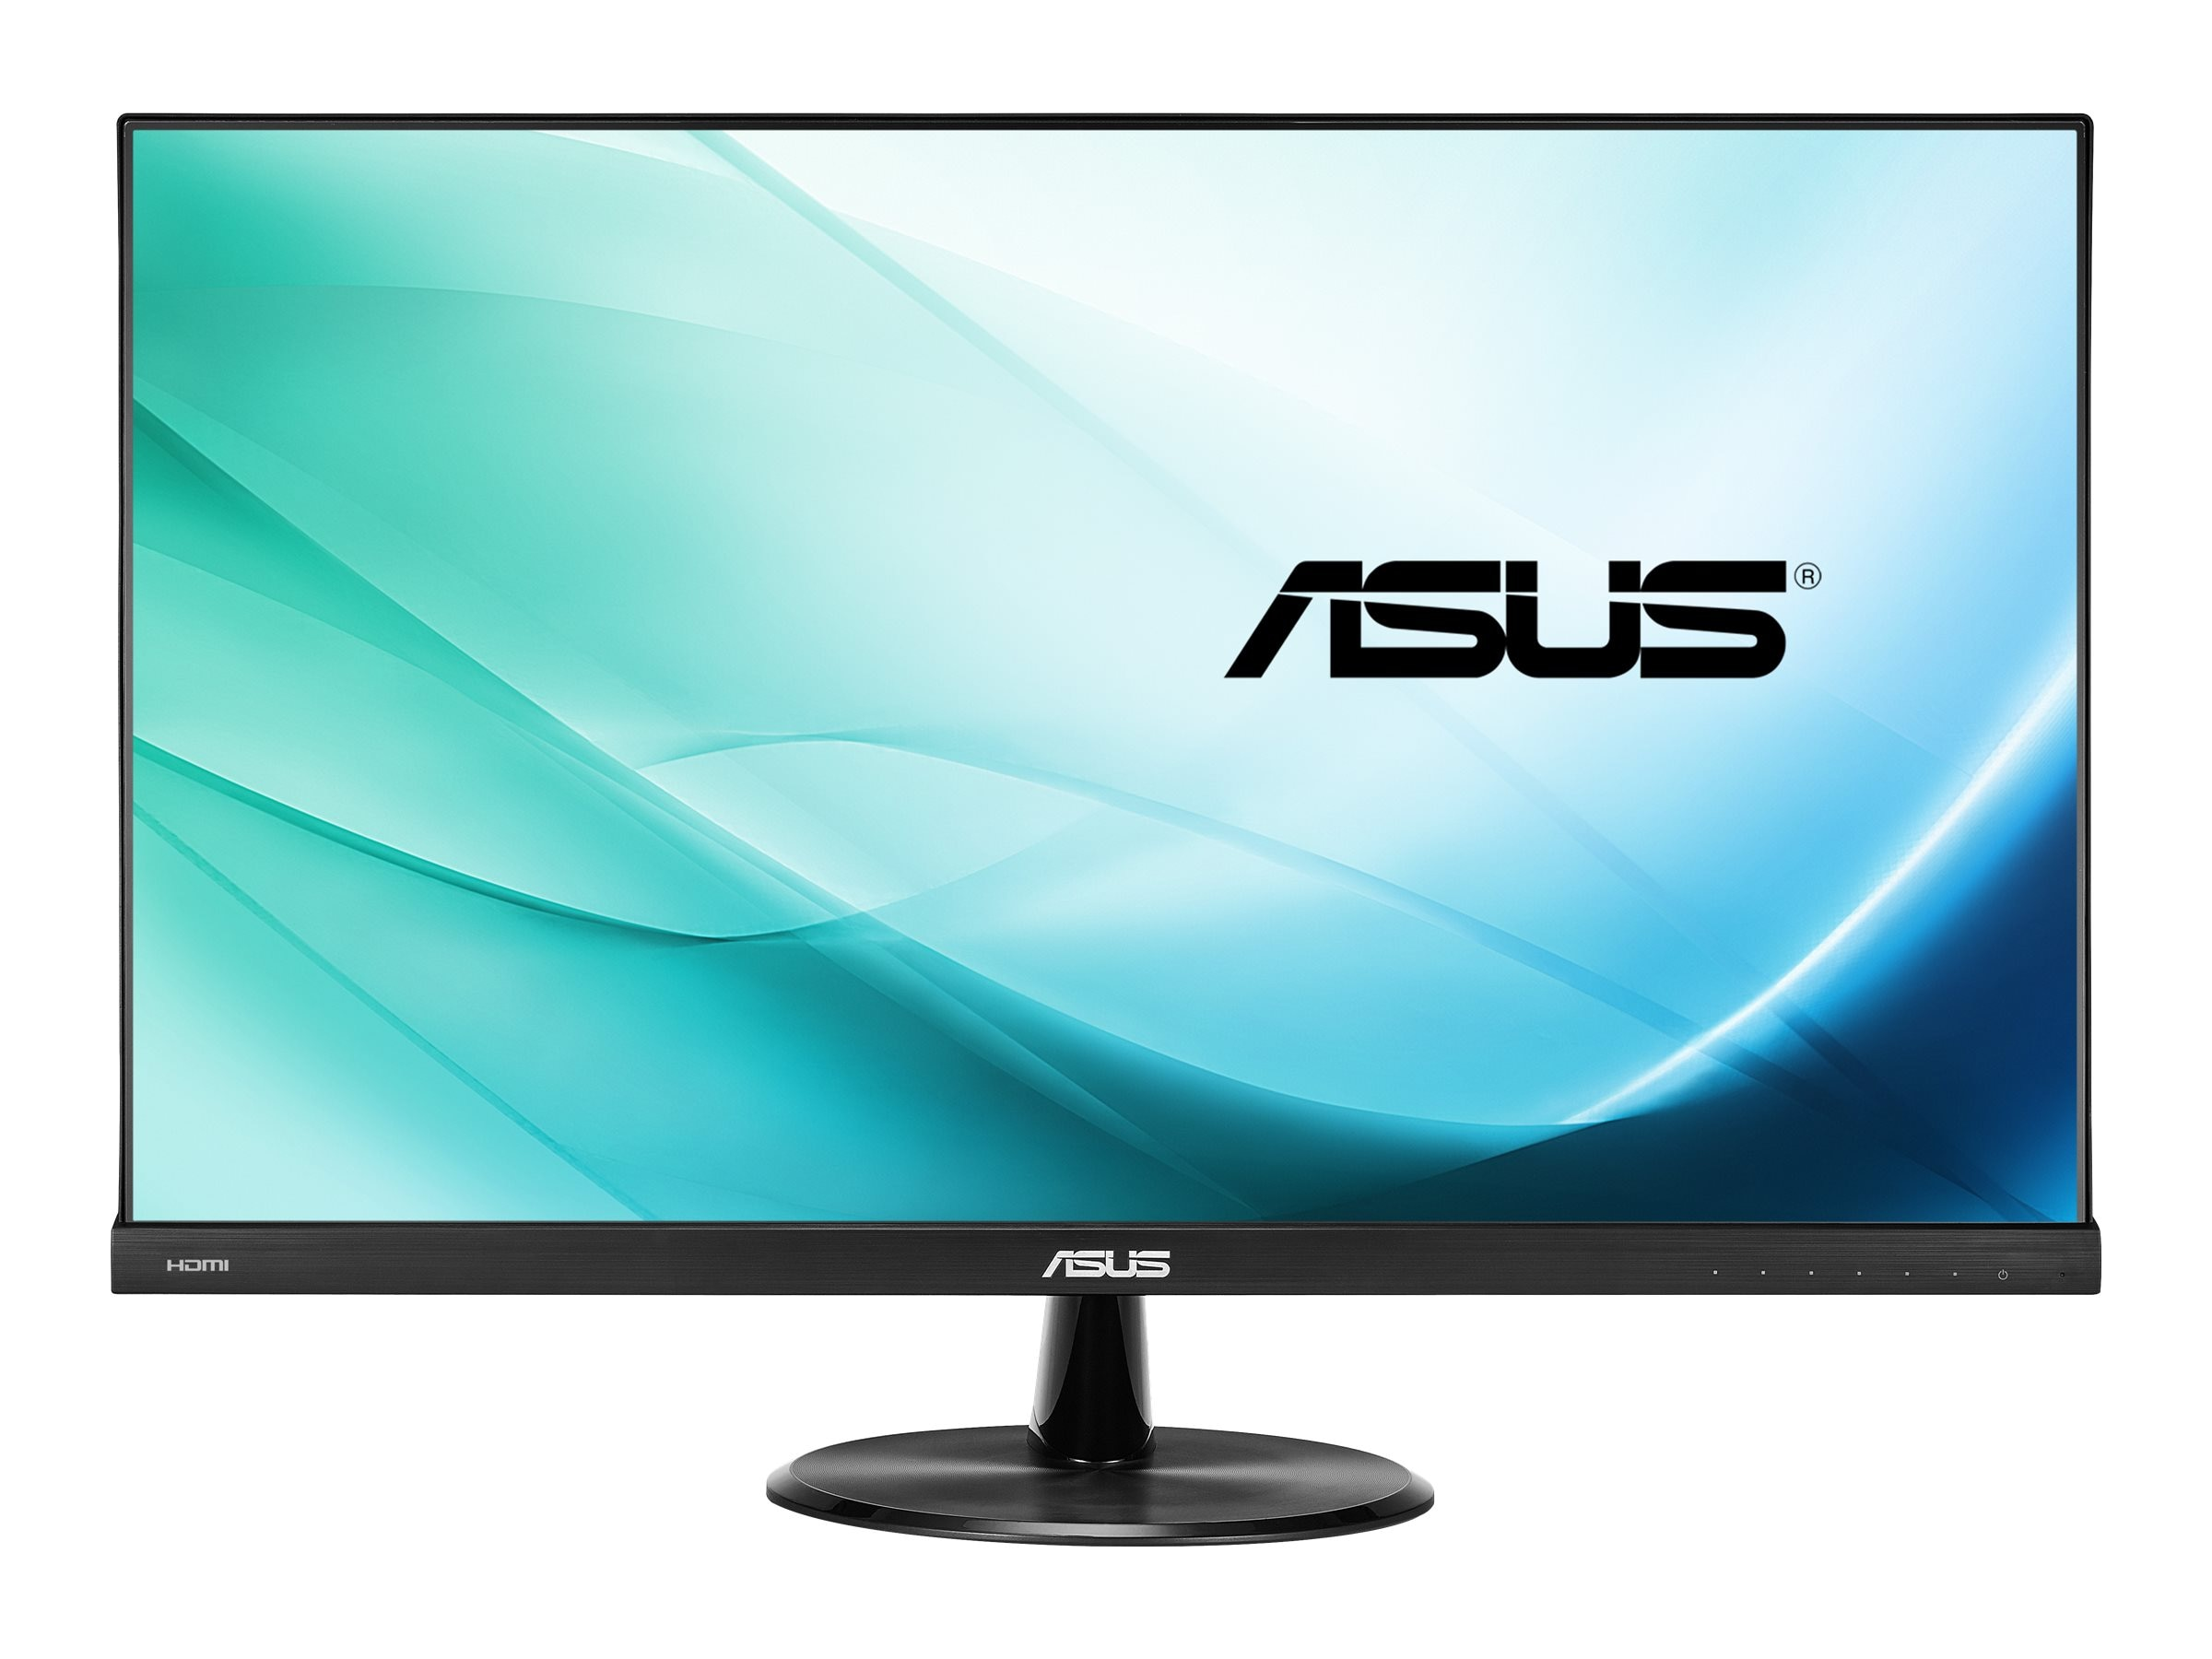 Asus 23 VP239H-P Full HD LED-LCD Monitor, Black